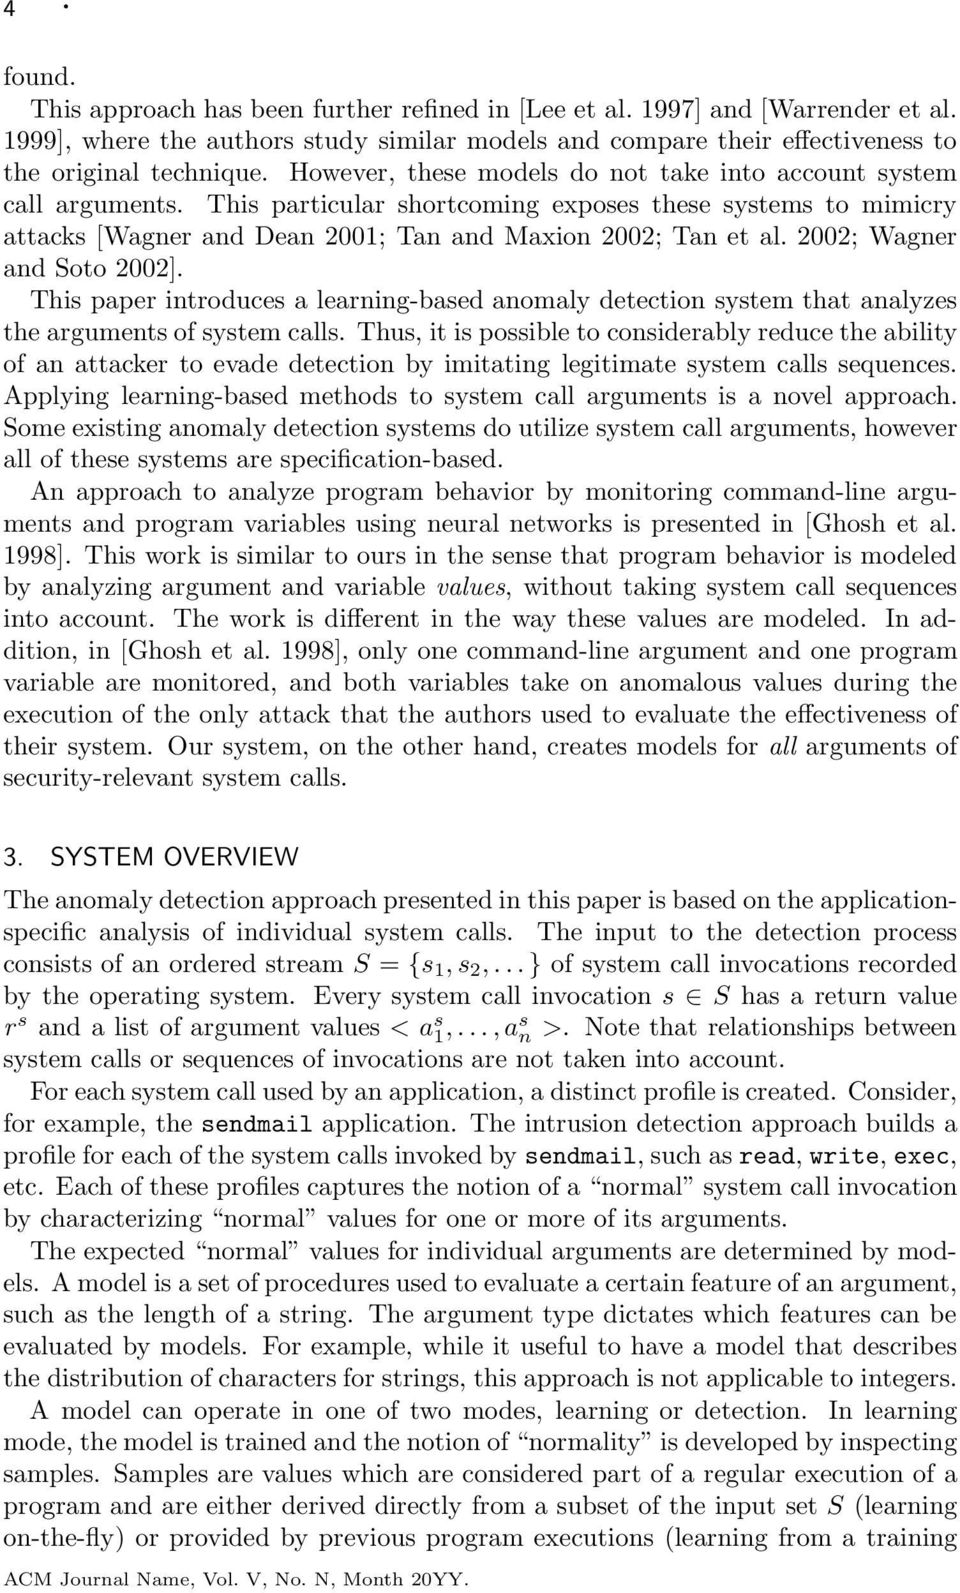 2002; Wagner and Soto 2002]. This paper introduces a learning-based anomaly detection system that analyzes the arguments of system calls.